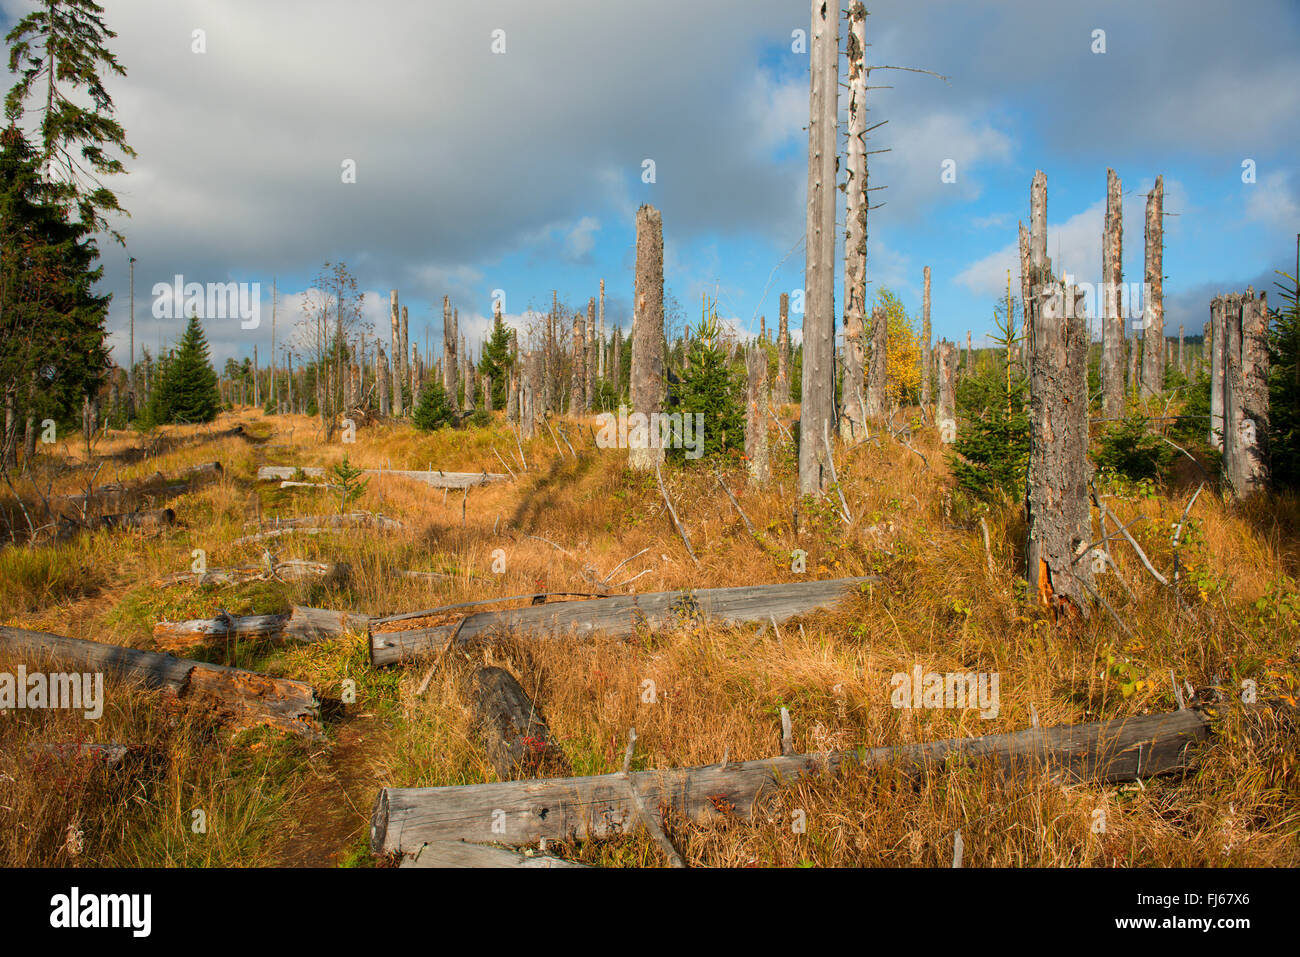 wind throw of trees after stormy weather, Germany, Bavaria, Bavarian Forest National Park - Stock Image